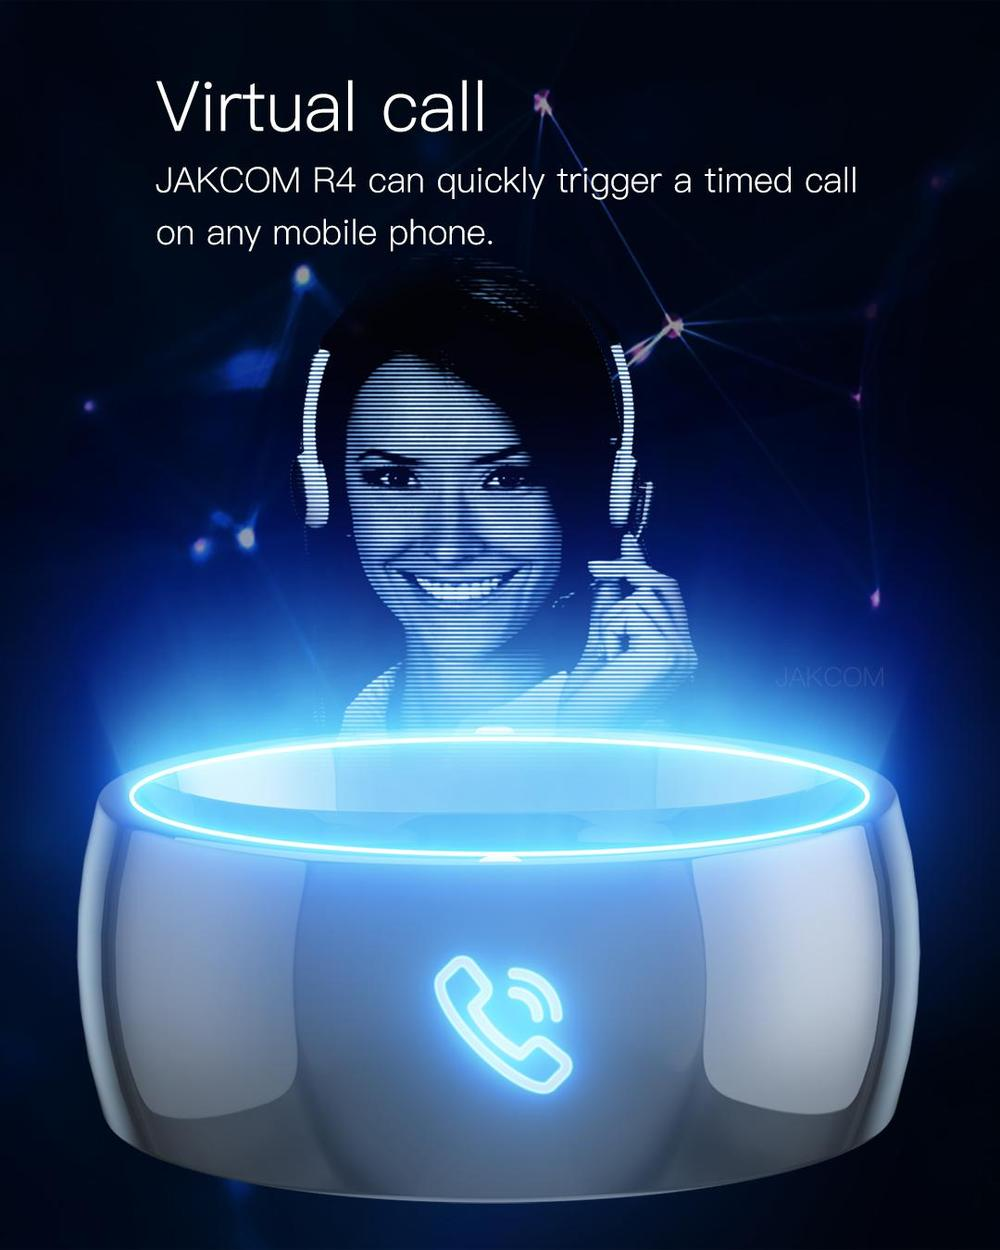 Bague connectée NFC Smart Ring 4 puces Jakcom R4 New IOS et Android